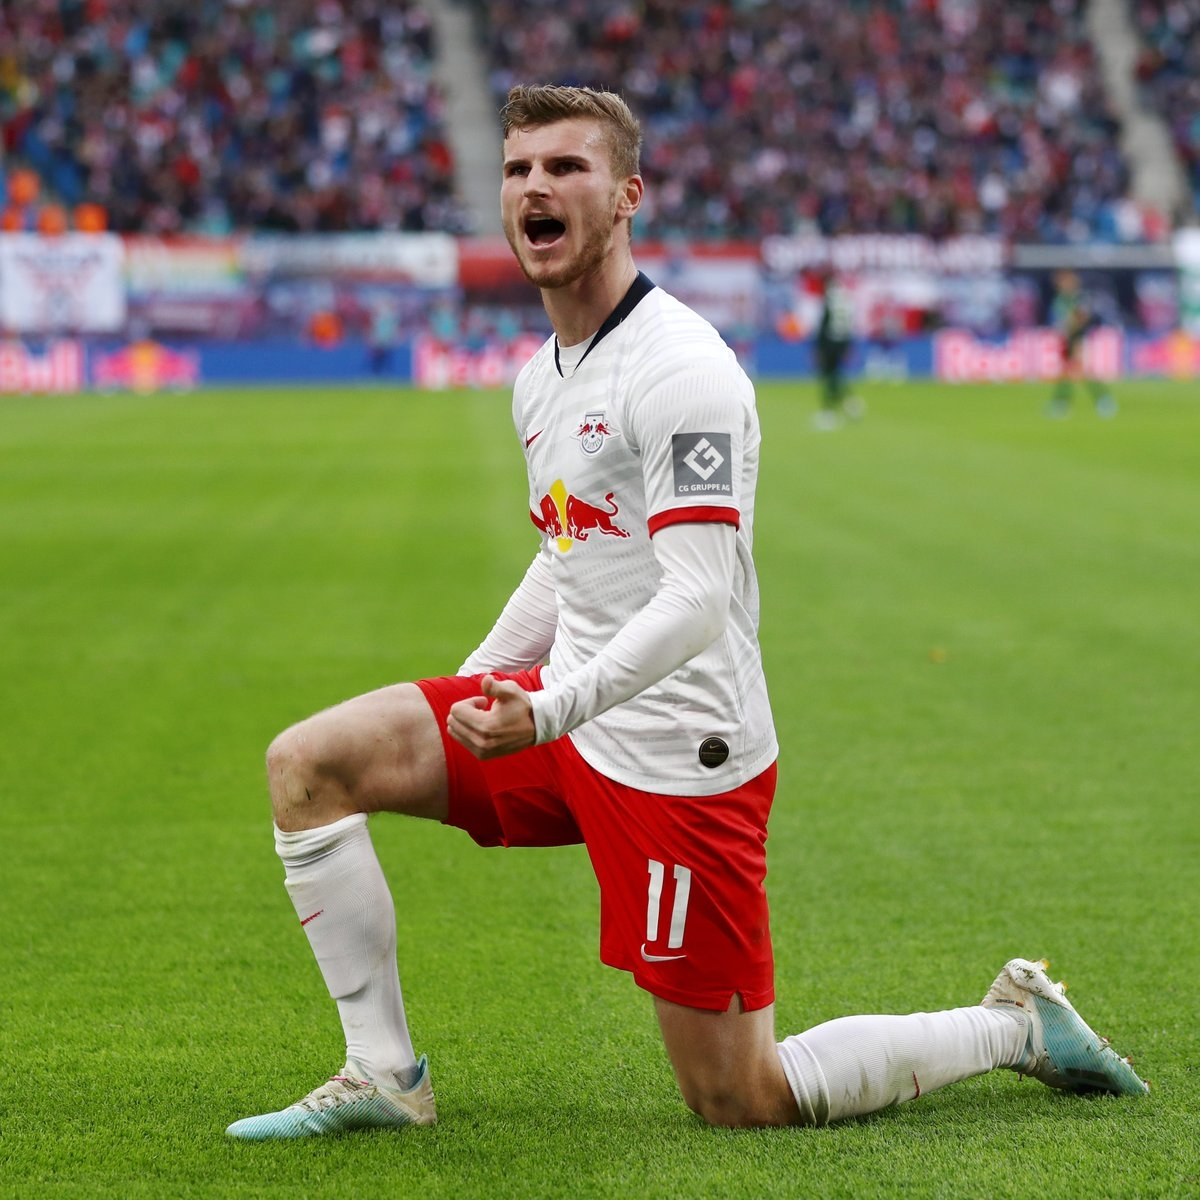 'We haven't had an exchange yet': RB Leipzig's managing director on Timo Werner's link to Chelsea